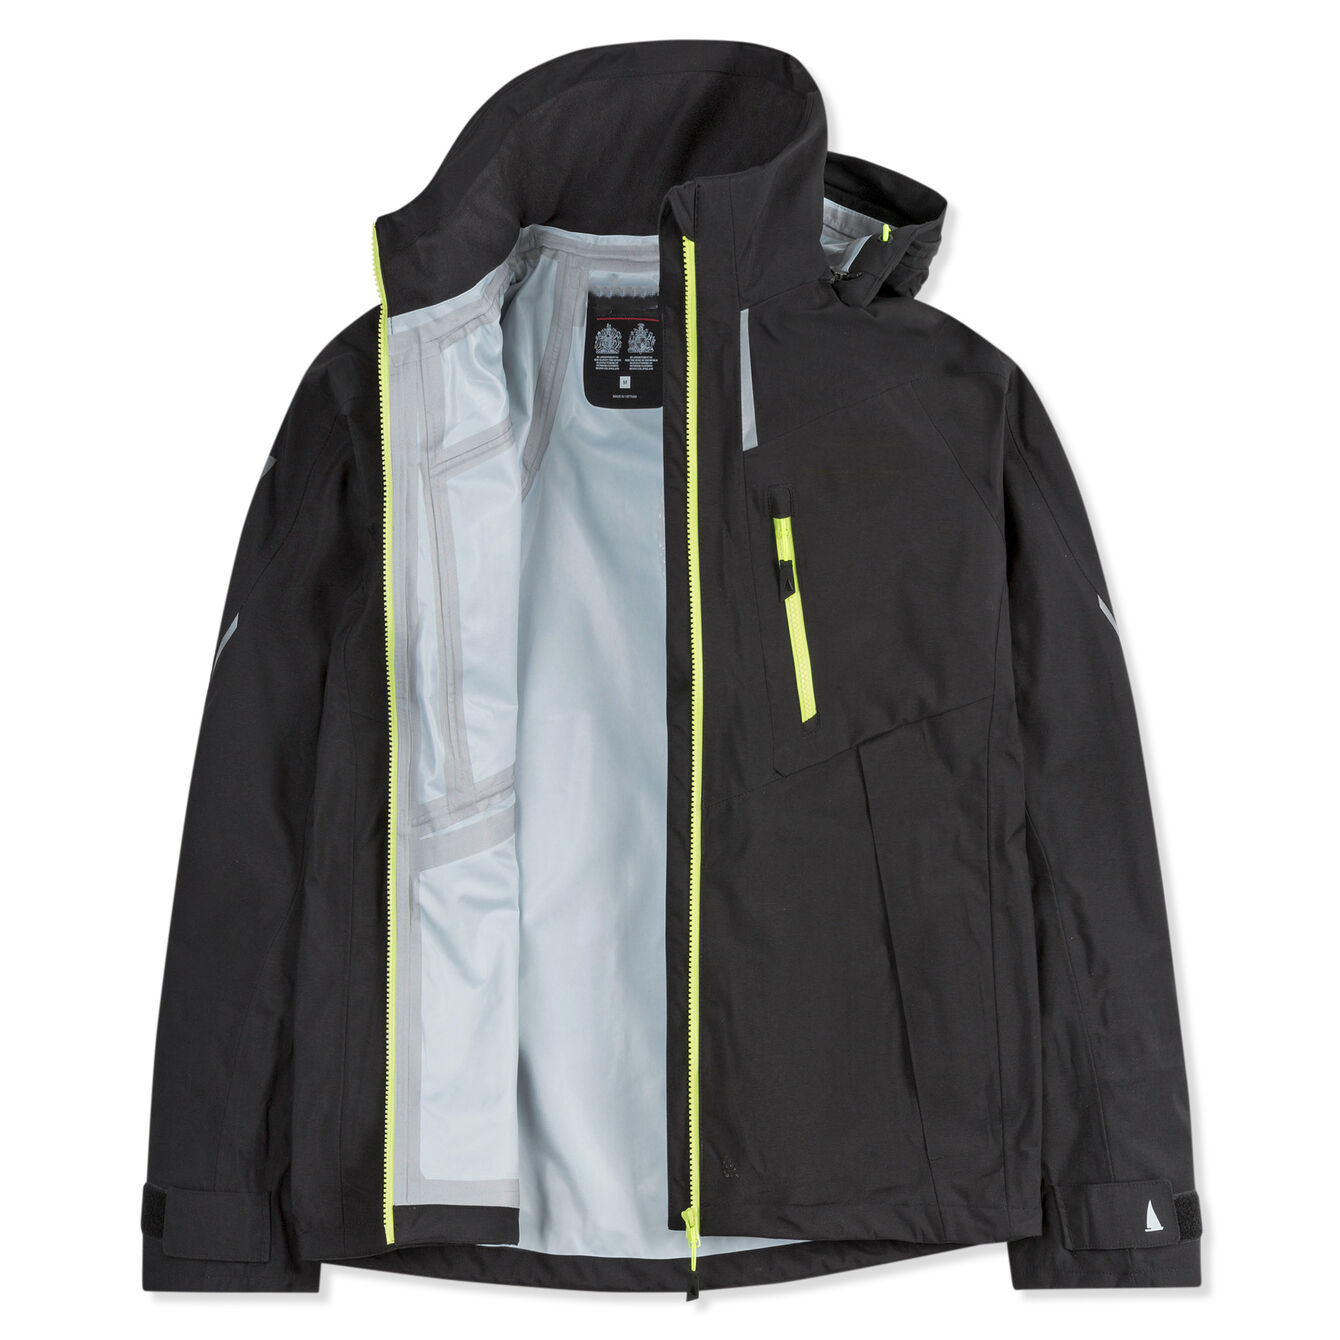 New PRO sailing jacket for men breathable 3layer sailing clothing waterproof